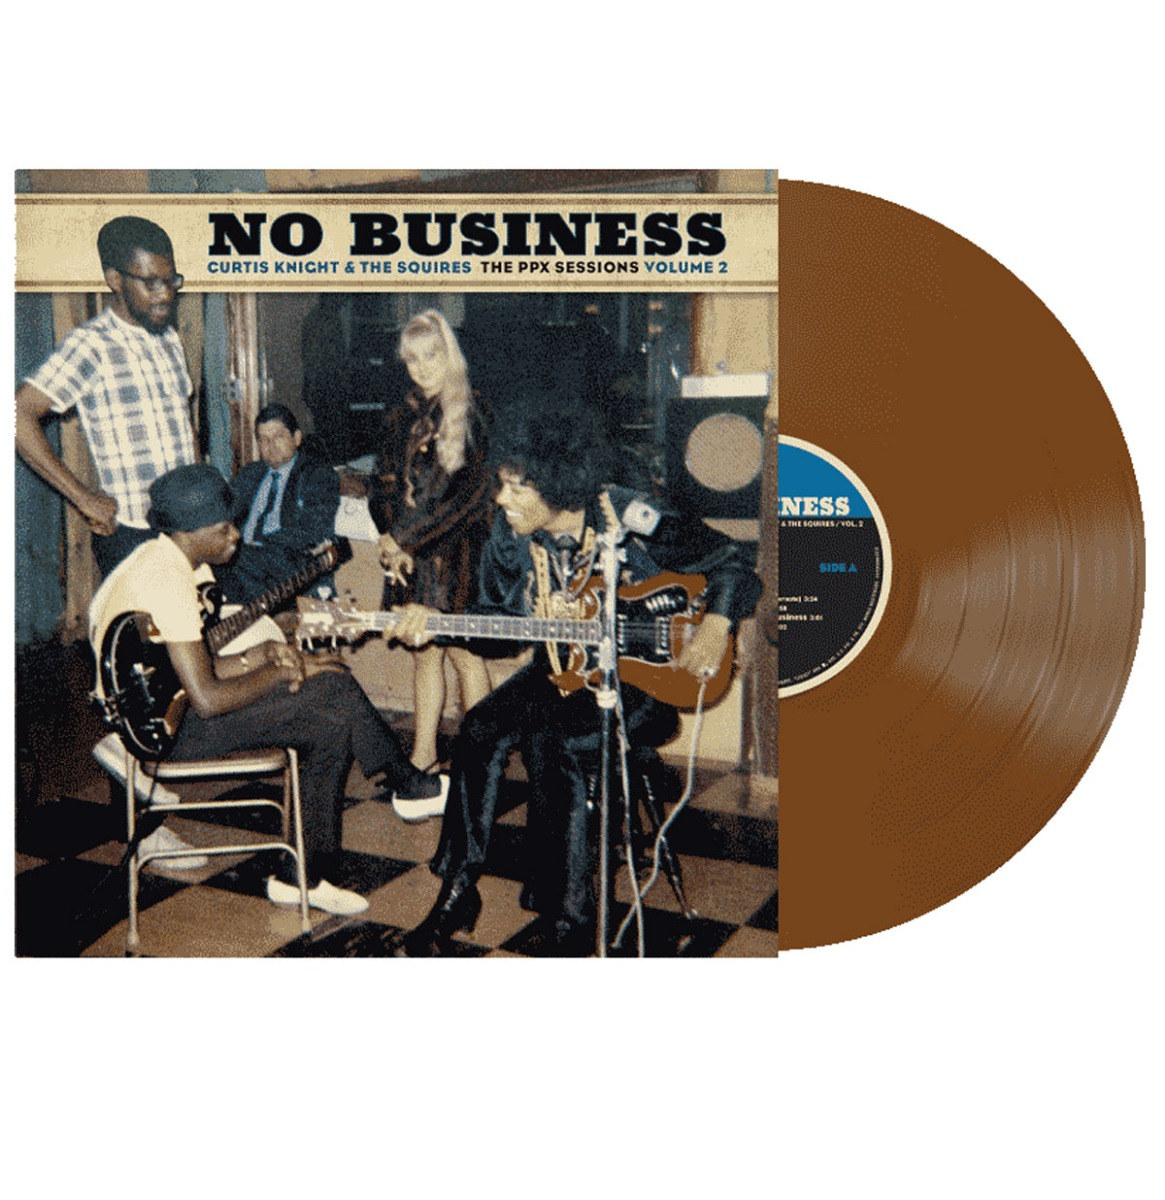 Curtis Knight & The Squires - No Business: The PPX Sessions Volume 2 : Vinyl LP Limited Black Friday